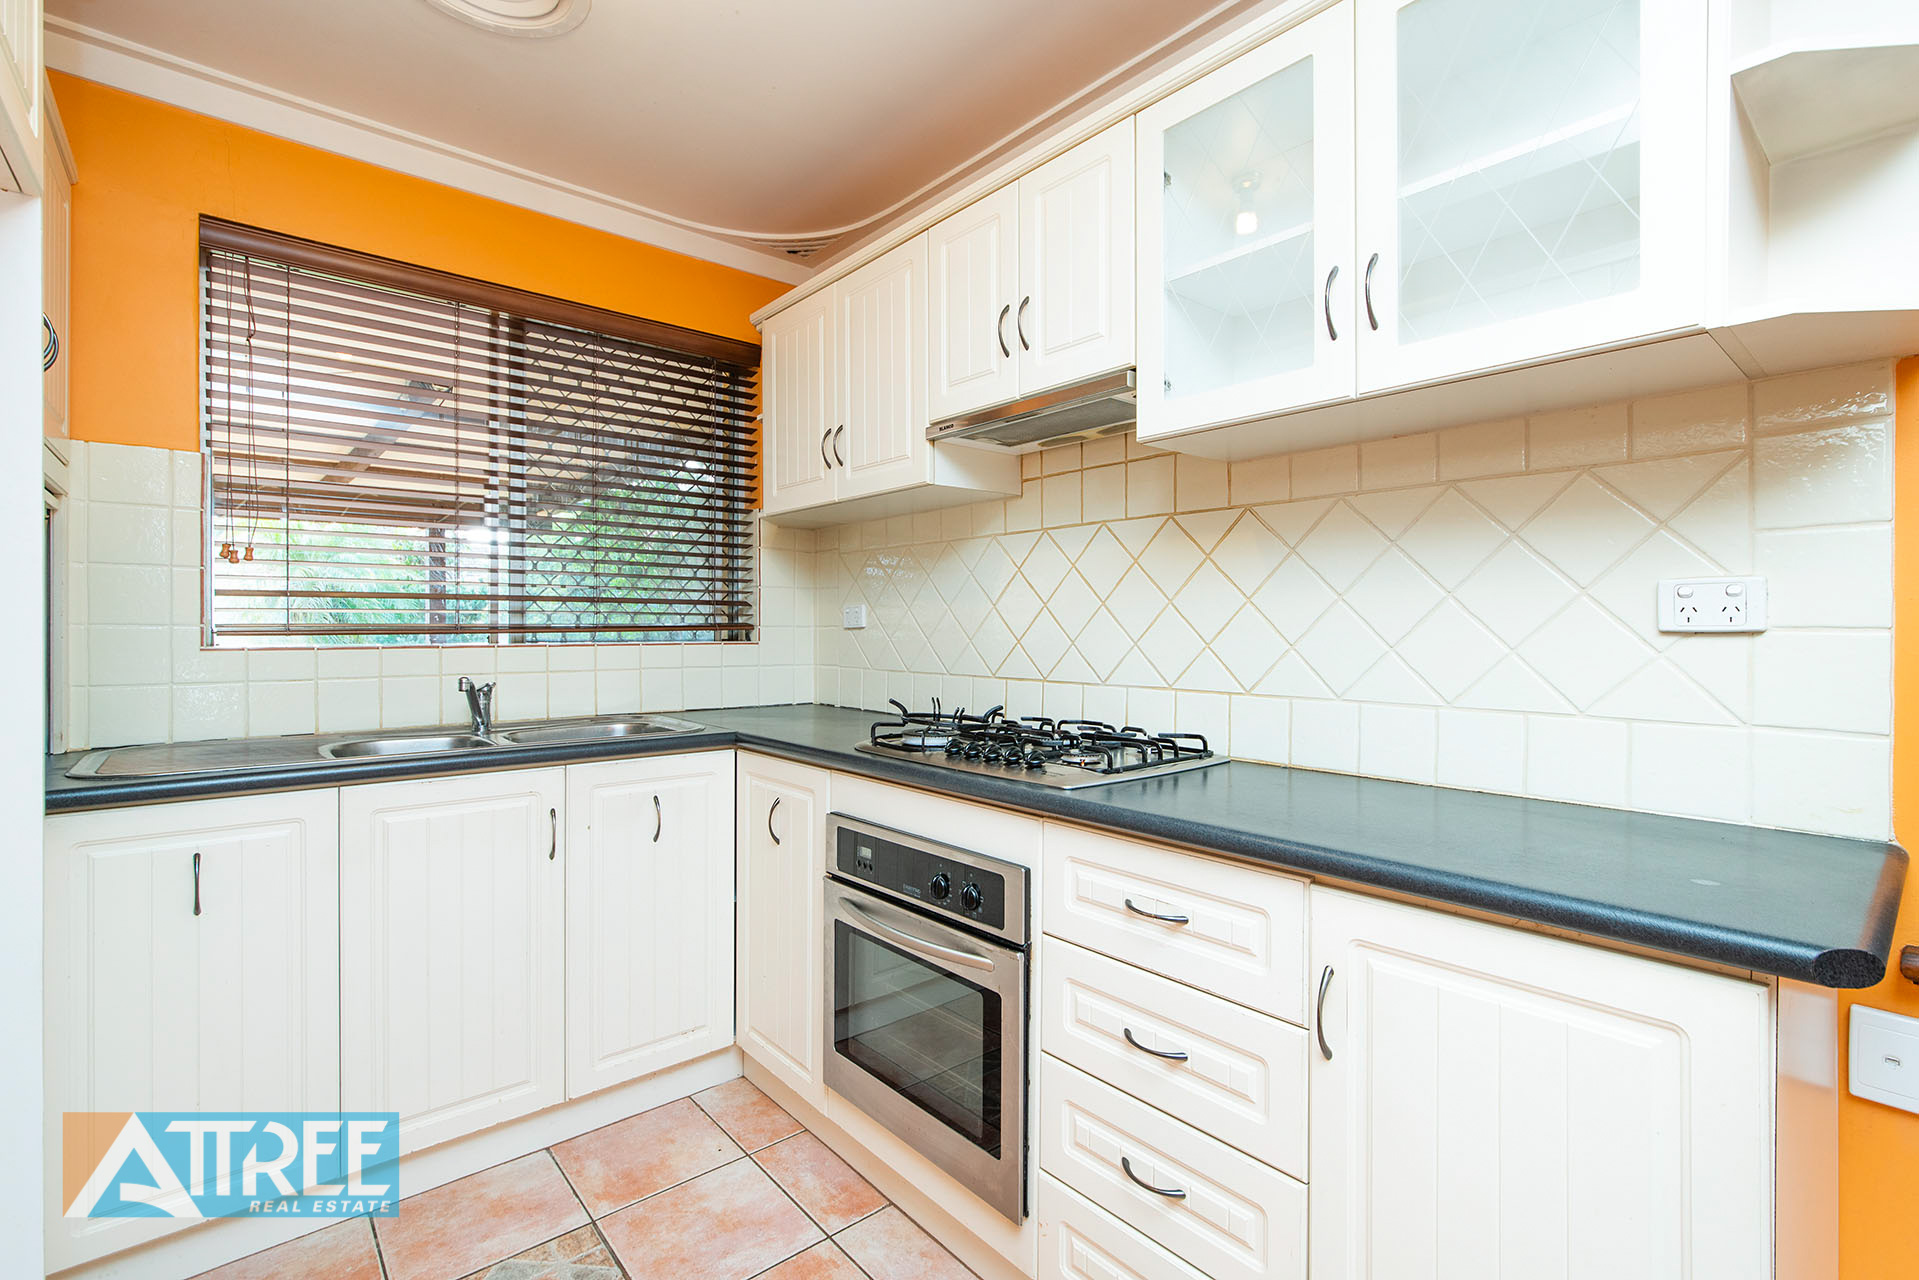 Property for sale in MADDINGTON, 10 Kennett Street : Attree Real Estate